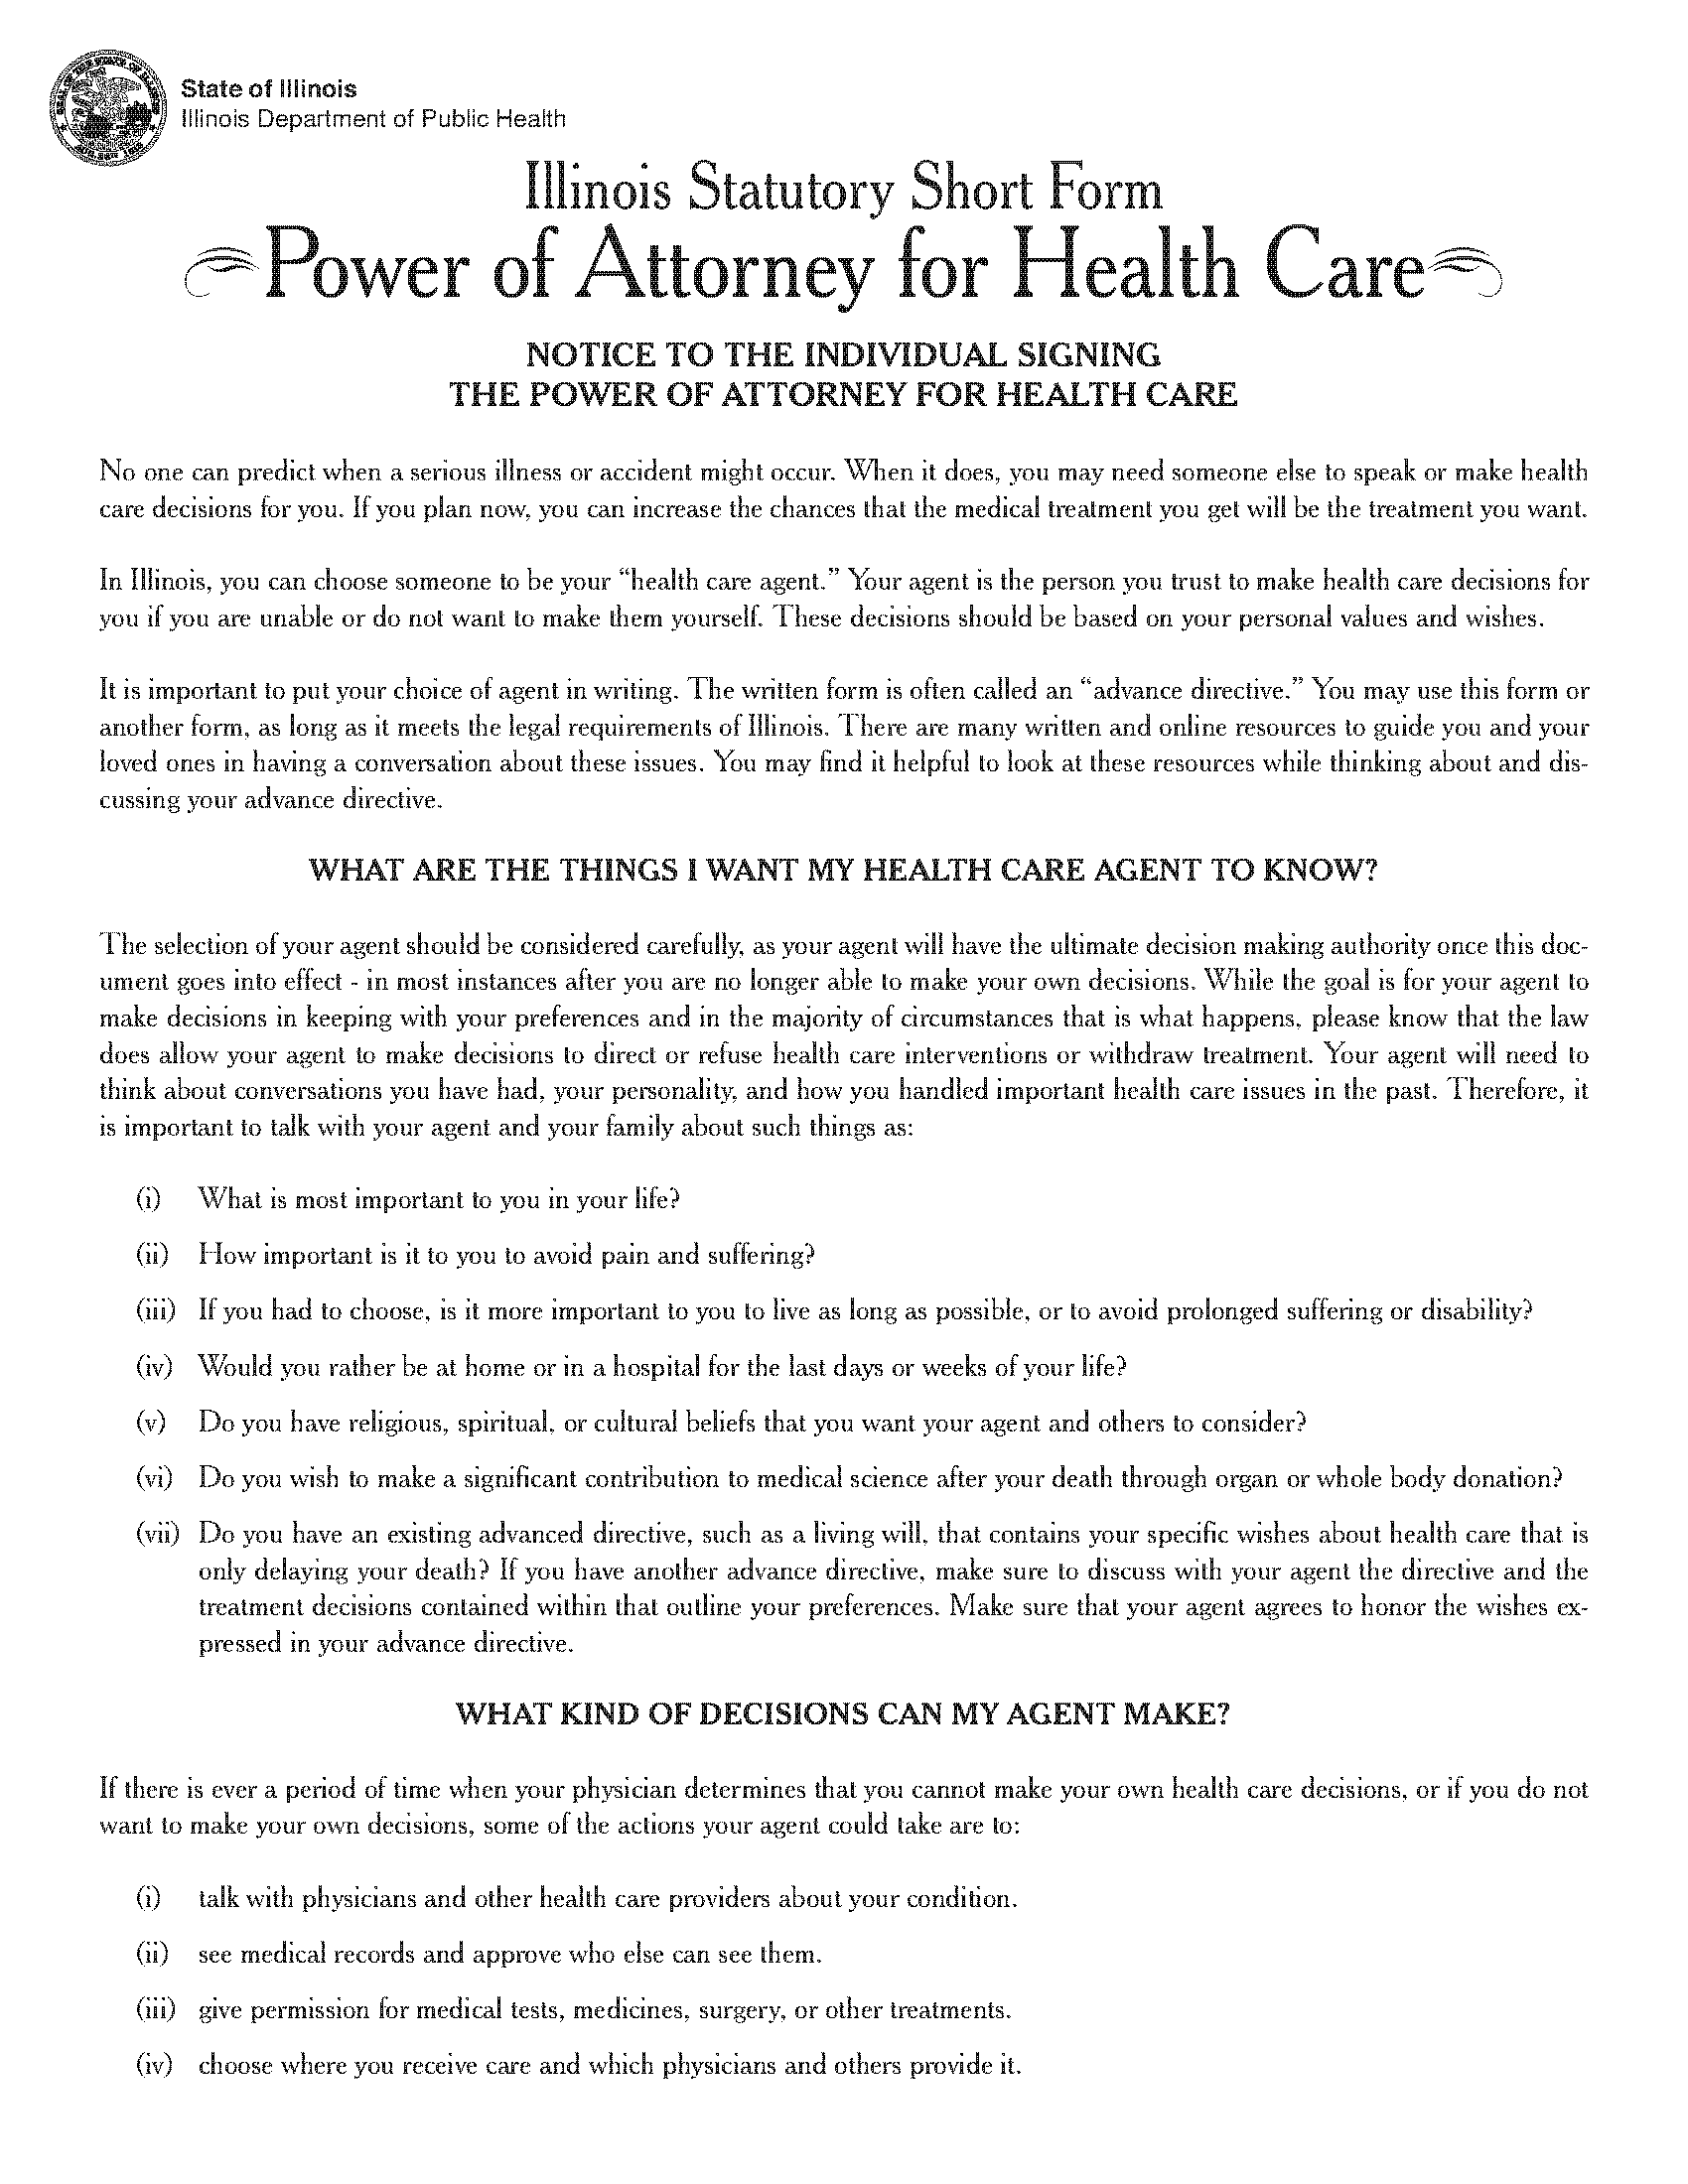 Illinois Medical Power Of Attorney Fillable PDF Free